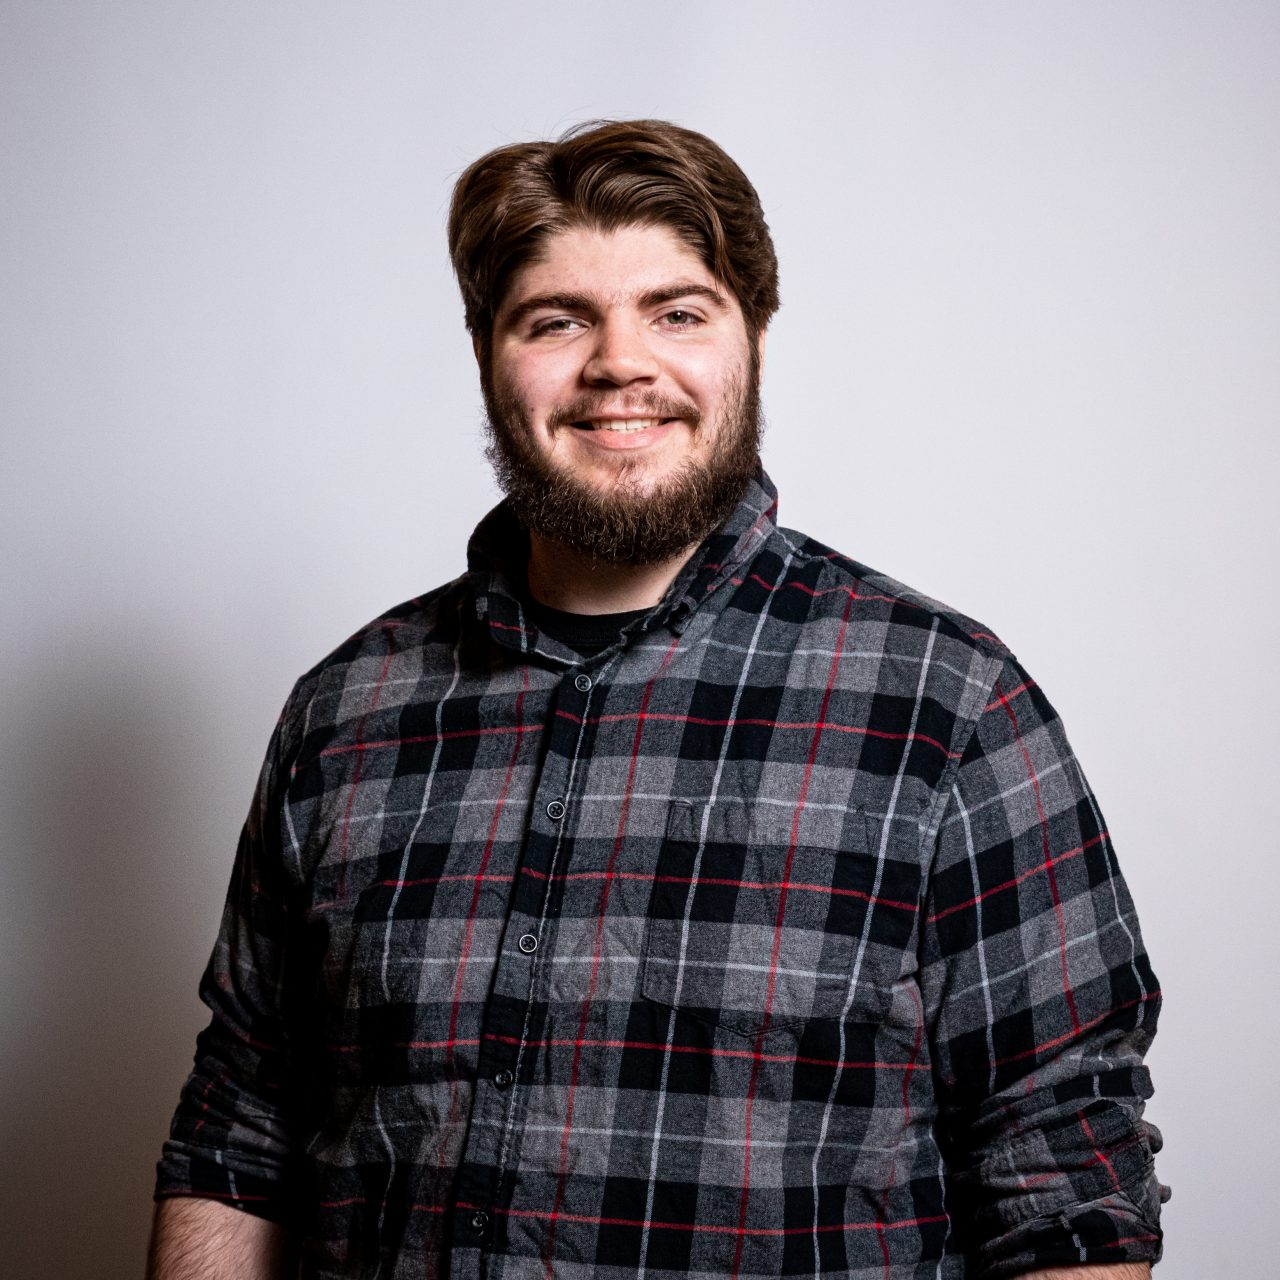 Image of a smiling student at a photoshoot